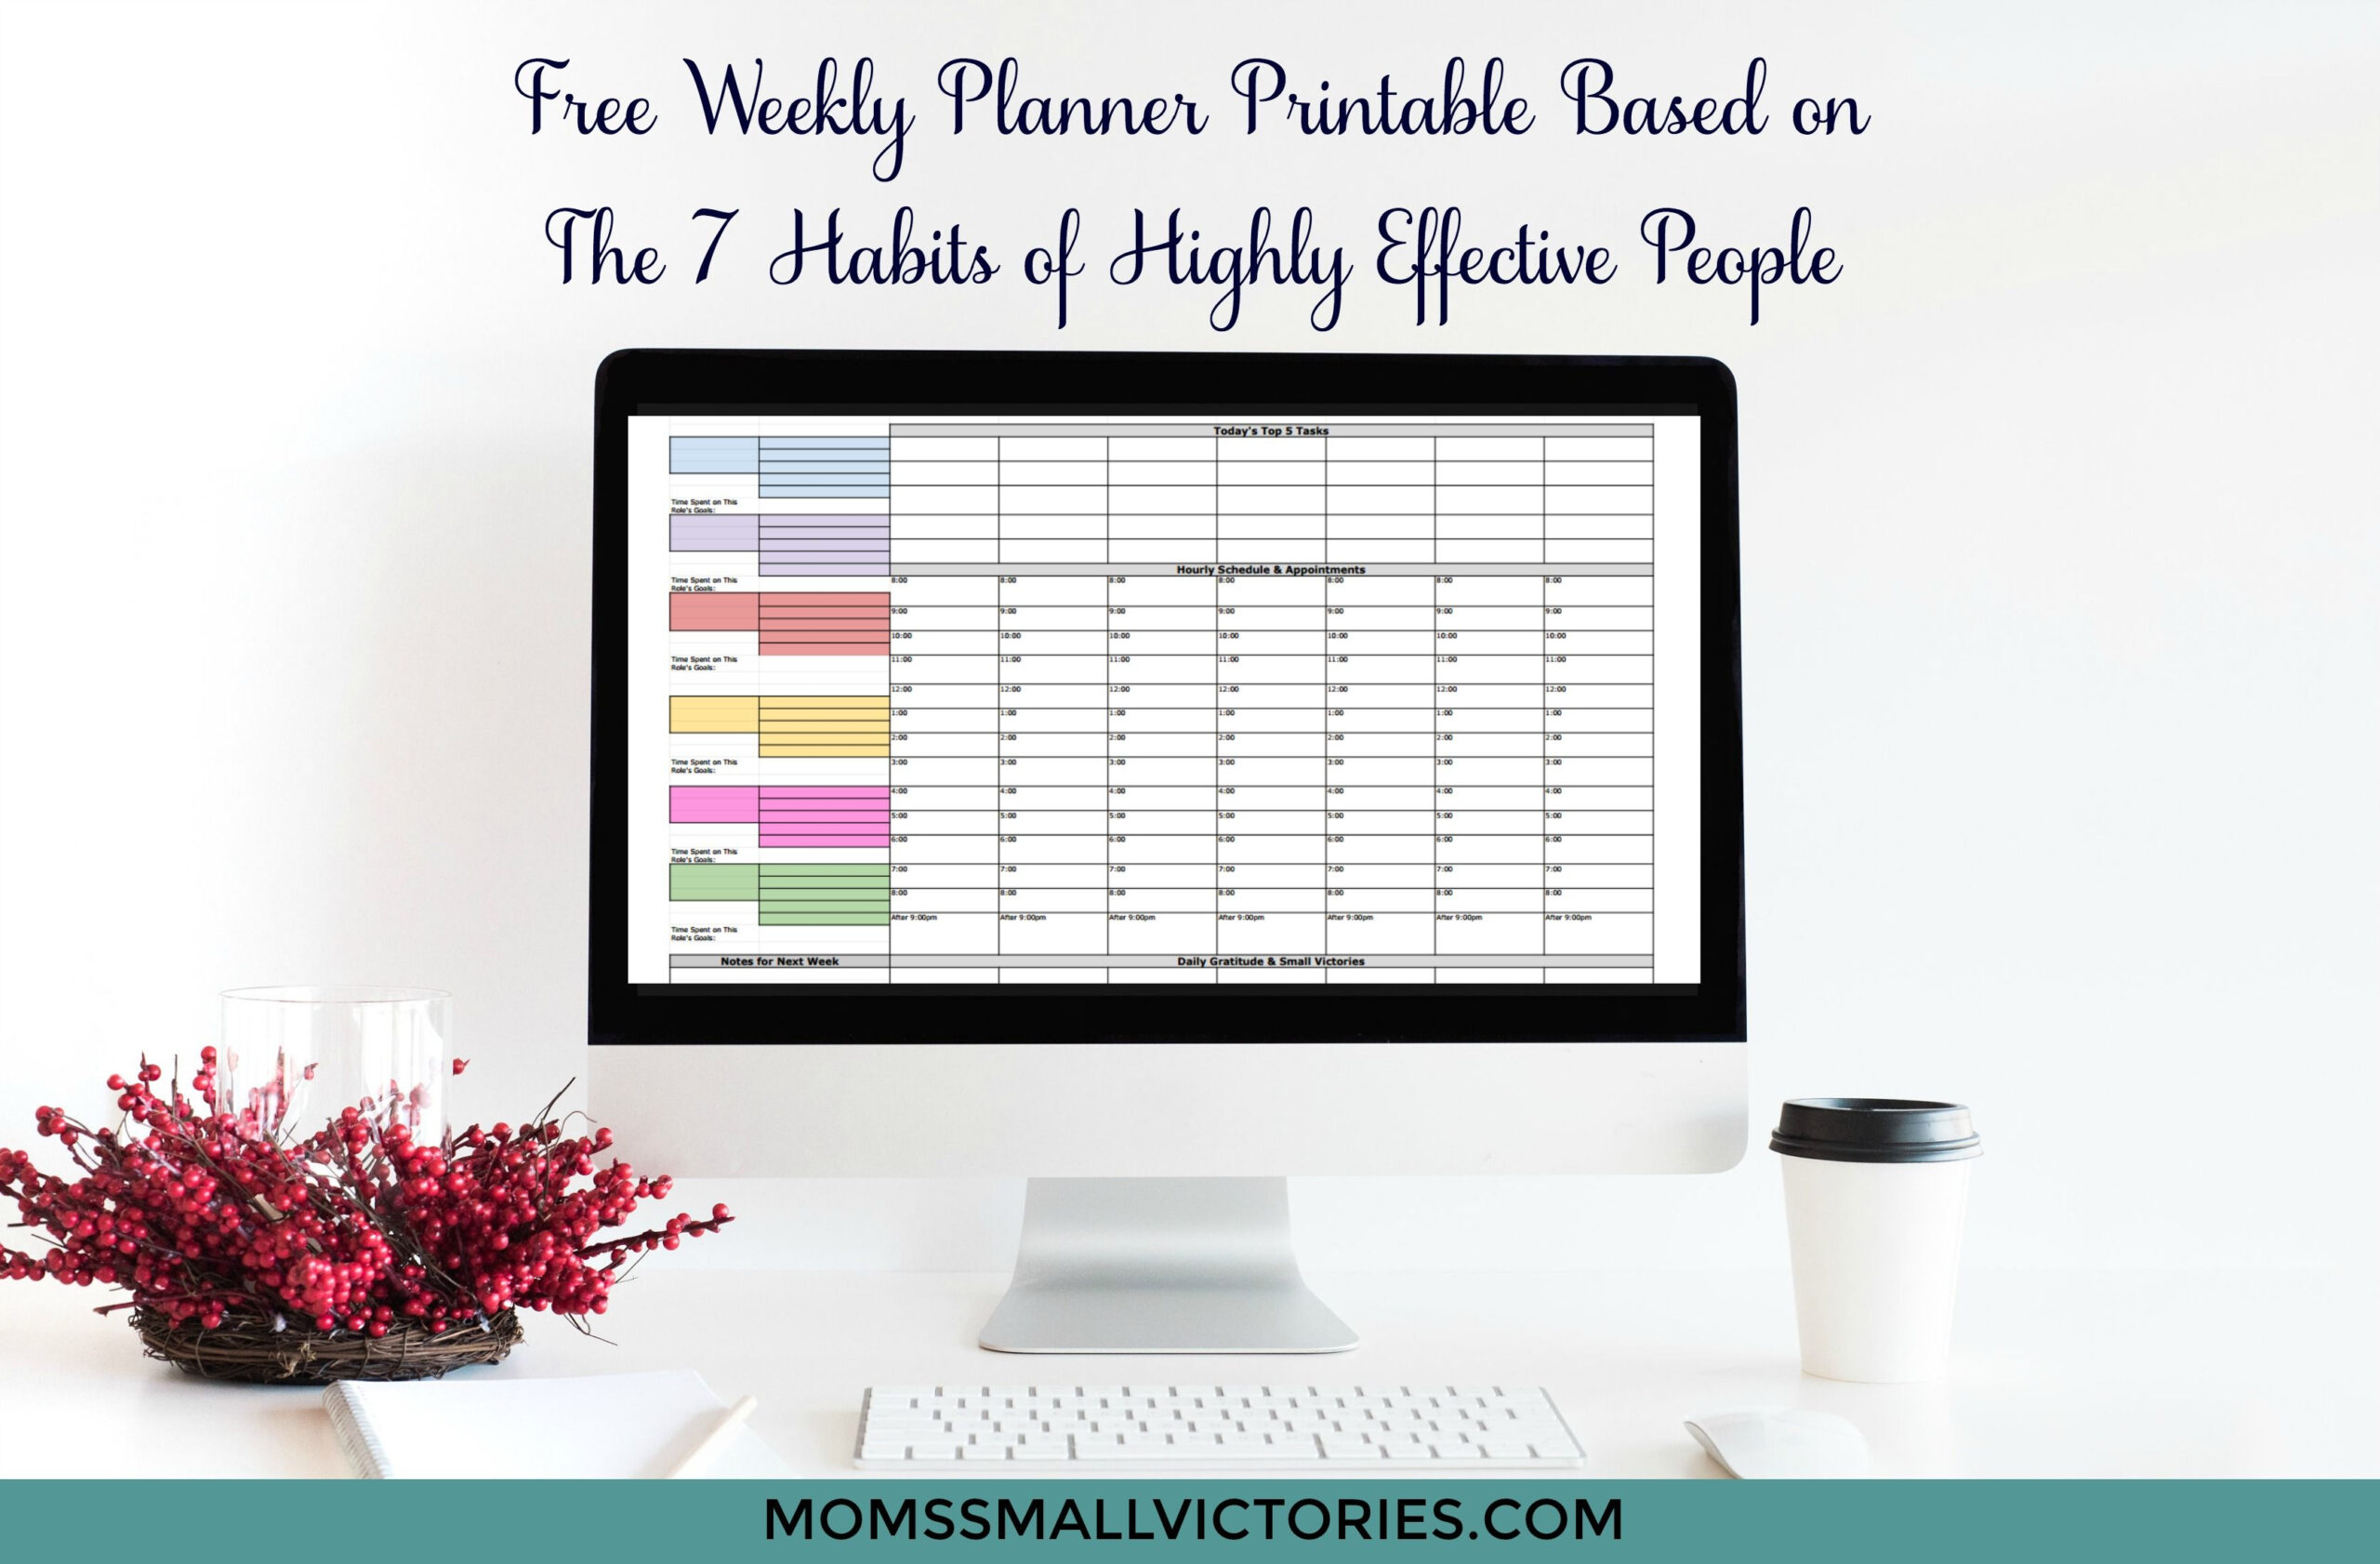 Free Weekly Planner Based On The 7 Habits Of Highly